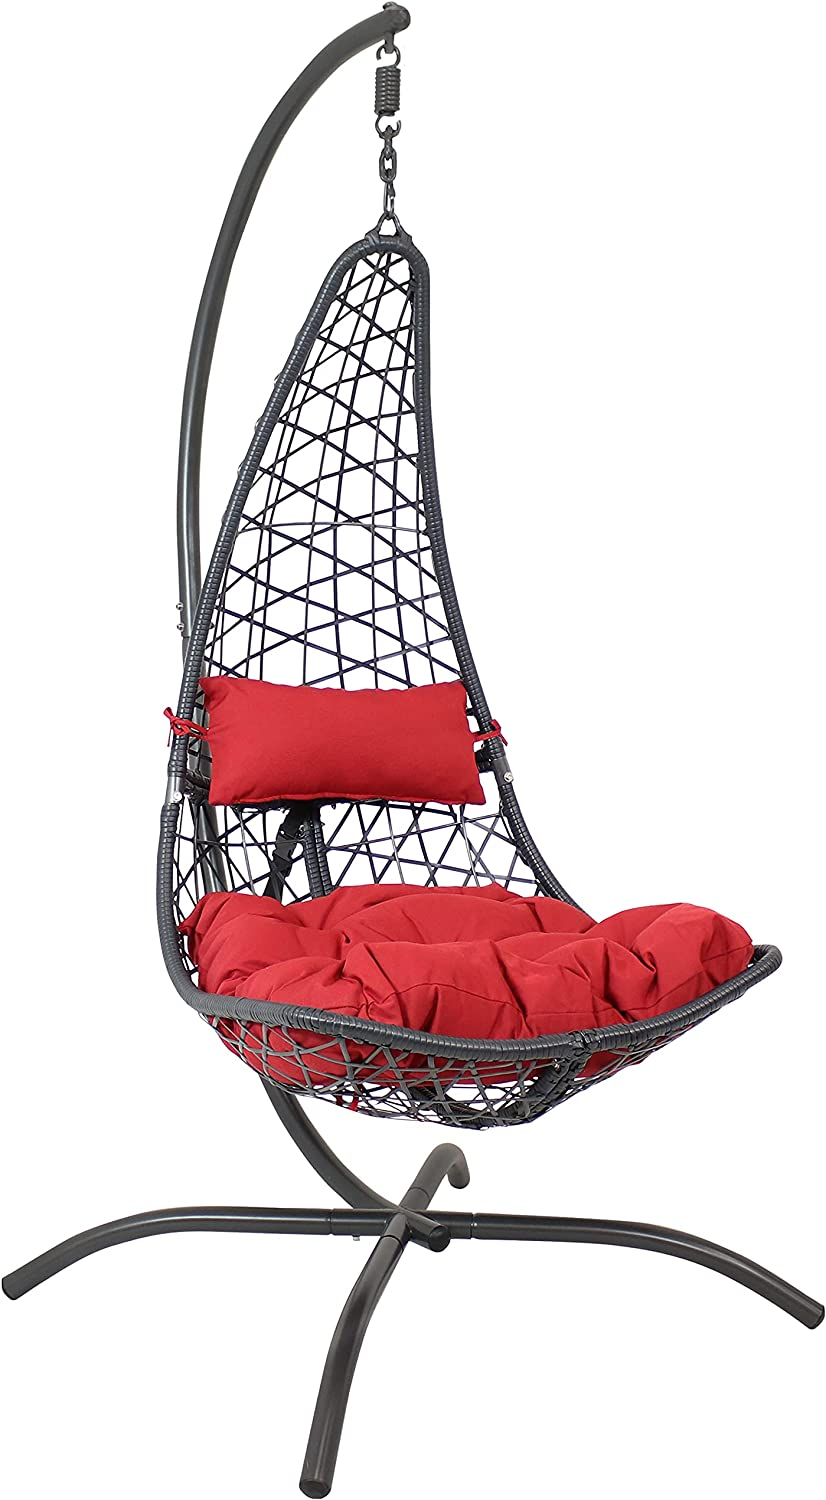 Sunnydaze Phoebe Hanging Lounge Chair Seat and Cushio Branded goods with Industry No. 1 Stand